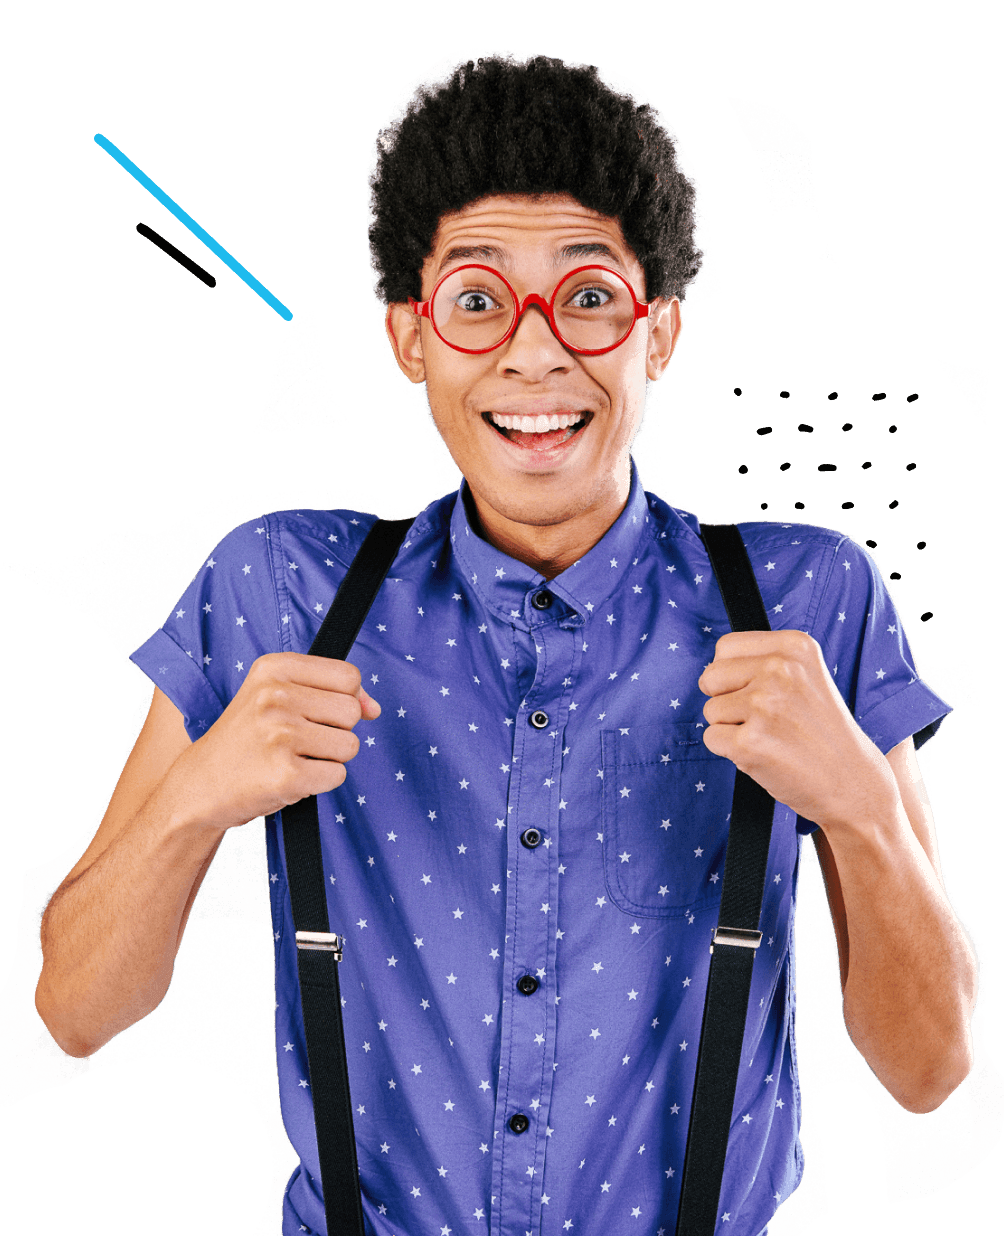 enthusiastic-male-student-wearing-glasses-and-suspenders